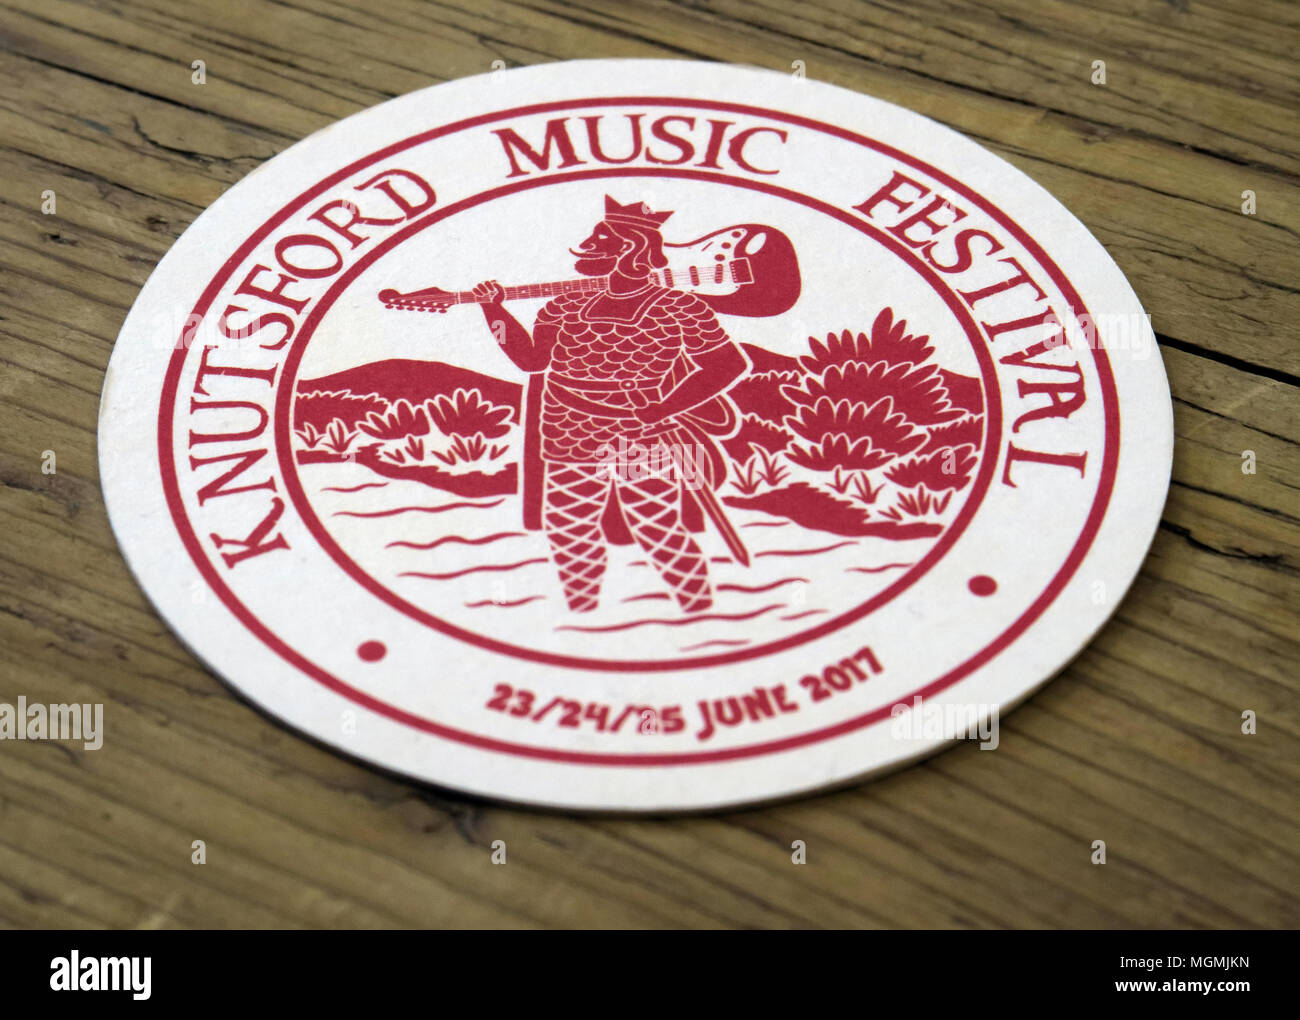 GoTonySmith,GB,Music,Festival,Beermat,Drip,Beer,Ale,CAMRA,mat,2017,22/23/24,22nd,23rd,24th,22nd June,annual,drinking,drinkers,history,historic,paper,white,red,man,holding,a,guitar,man holding guitar,on a table,mat on table,spill,alcohol,consumption,musical,heritage,play,playing,village,town